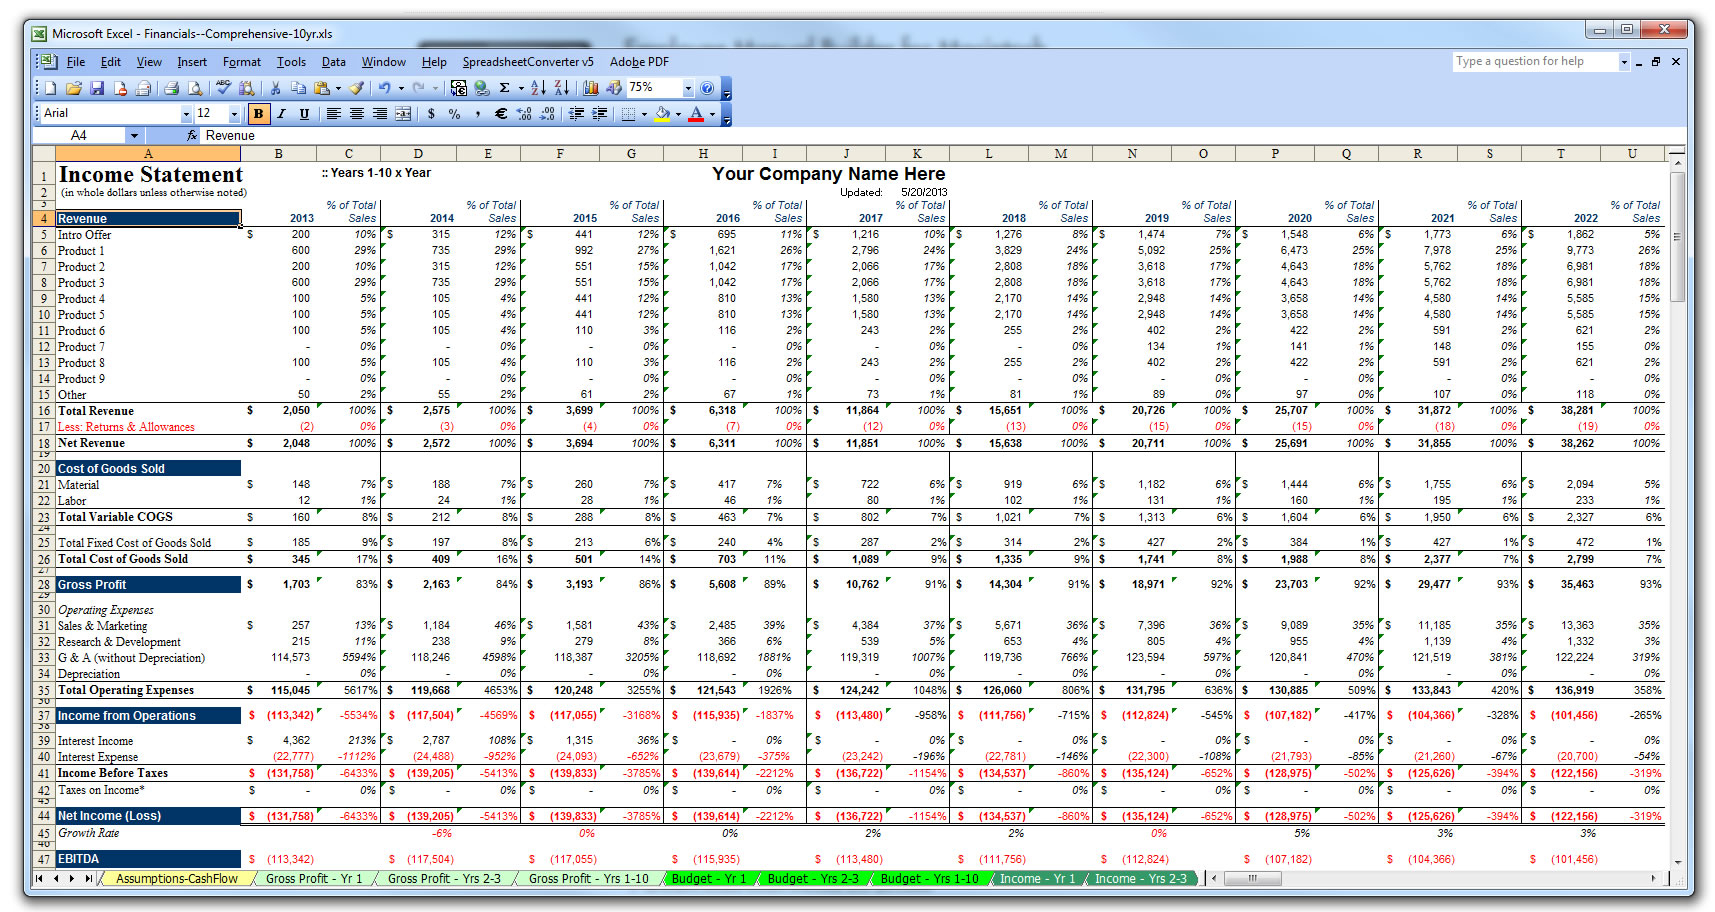 Business Plan Financial Template Excel Download - Resourcesaver With Business Plan Financial Template Excel Download